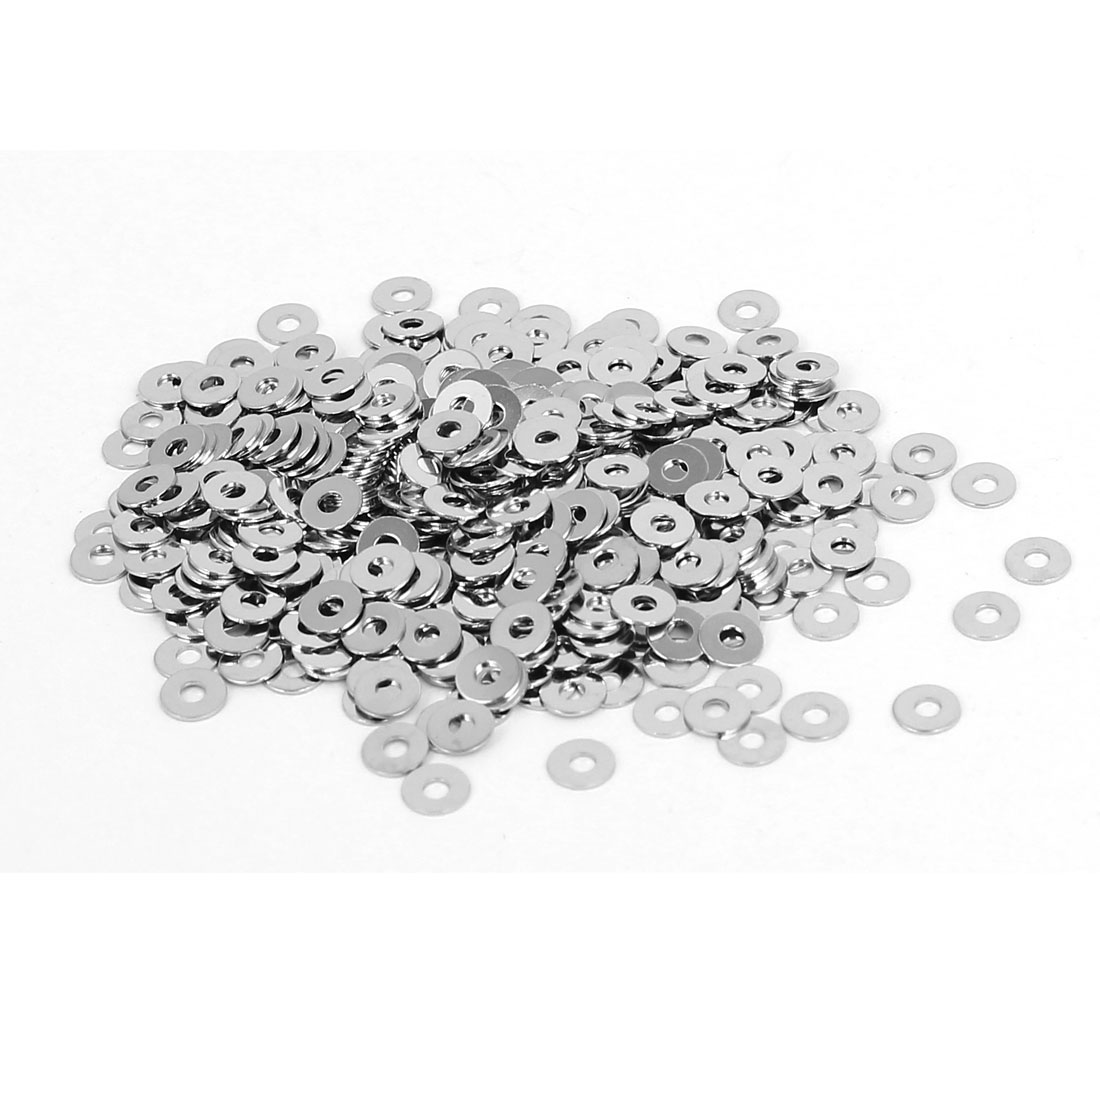 M1.6 x 4mm x 0.3mm Nickel Plated Flat Washers Gaskets Spacers Silver Tone 400PCS